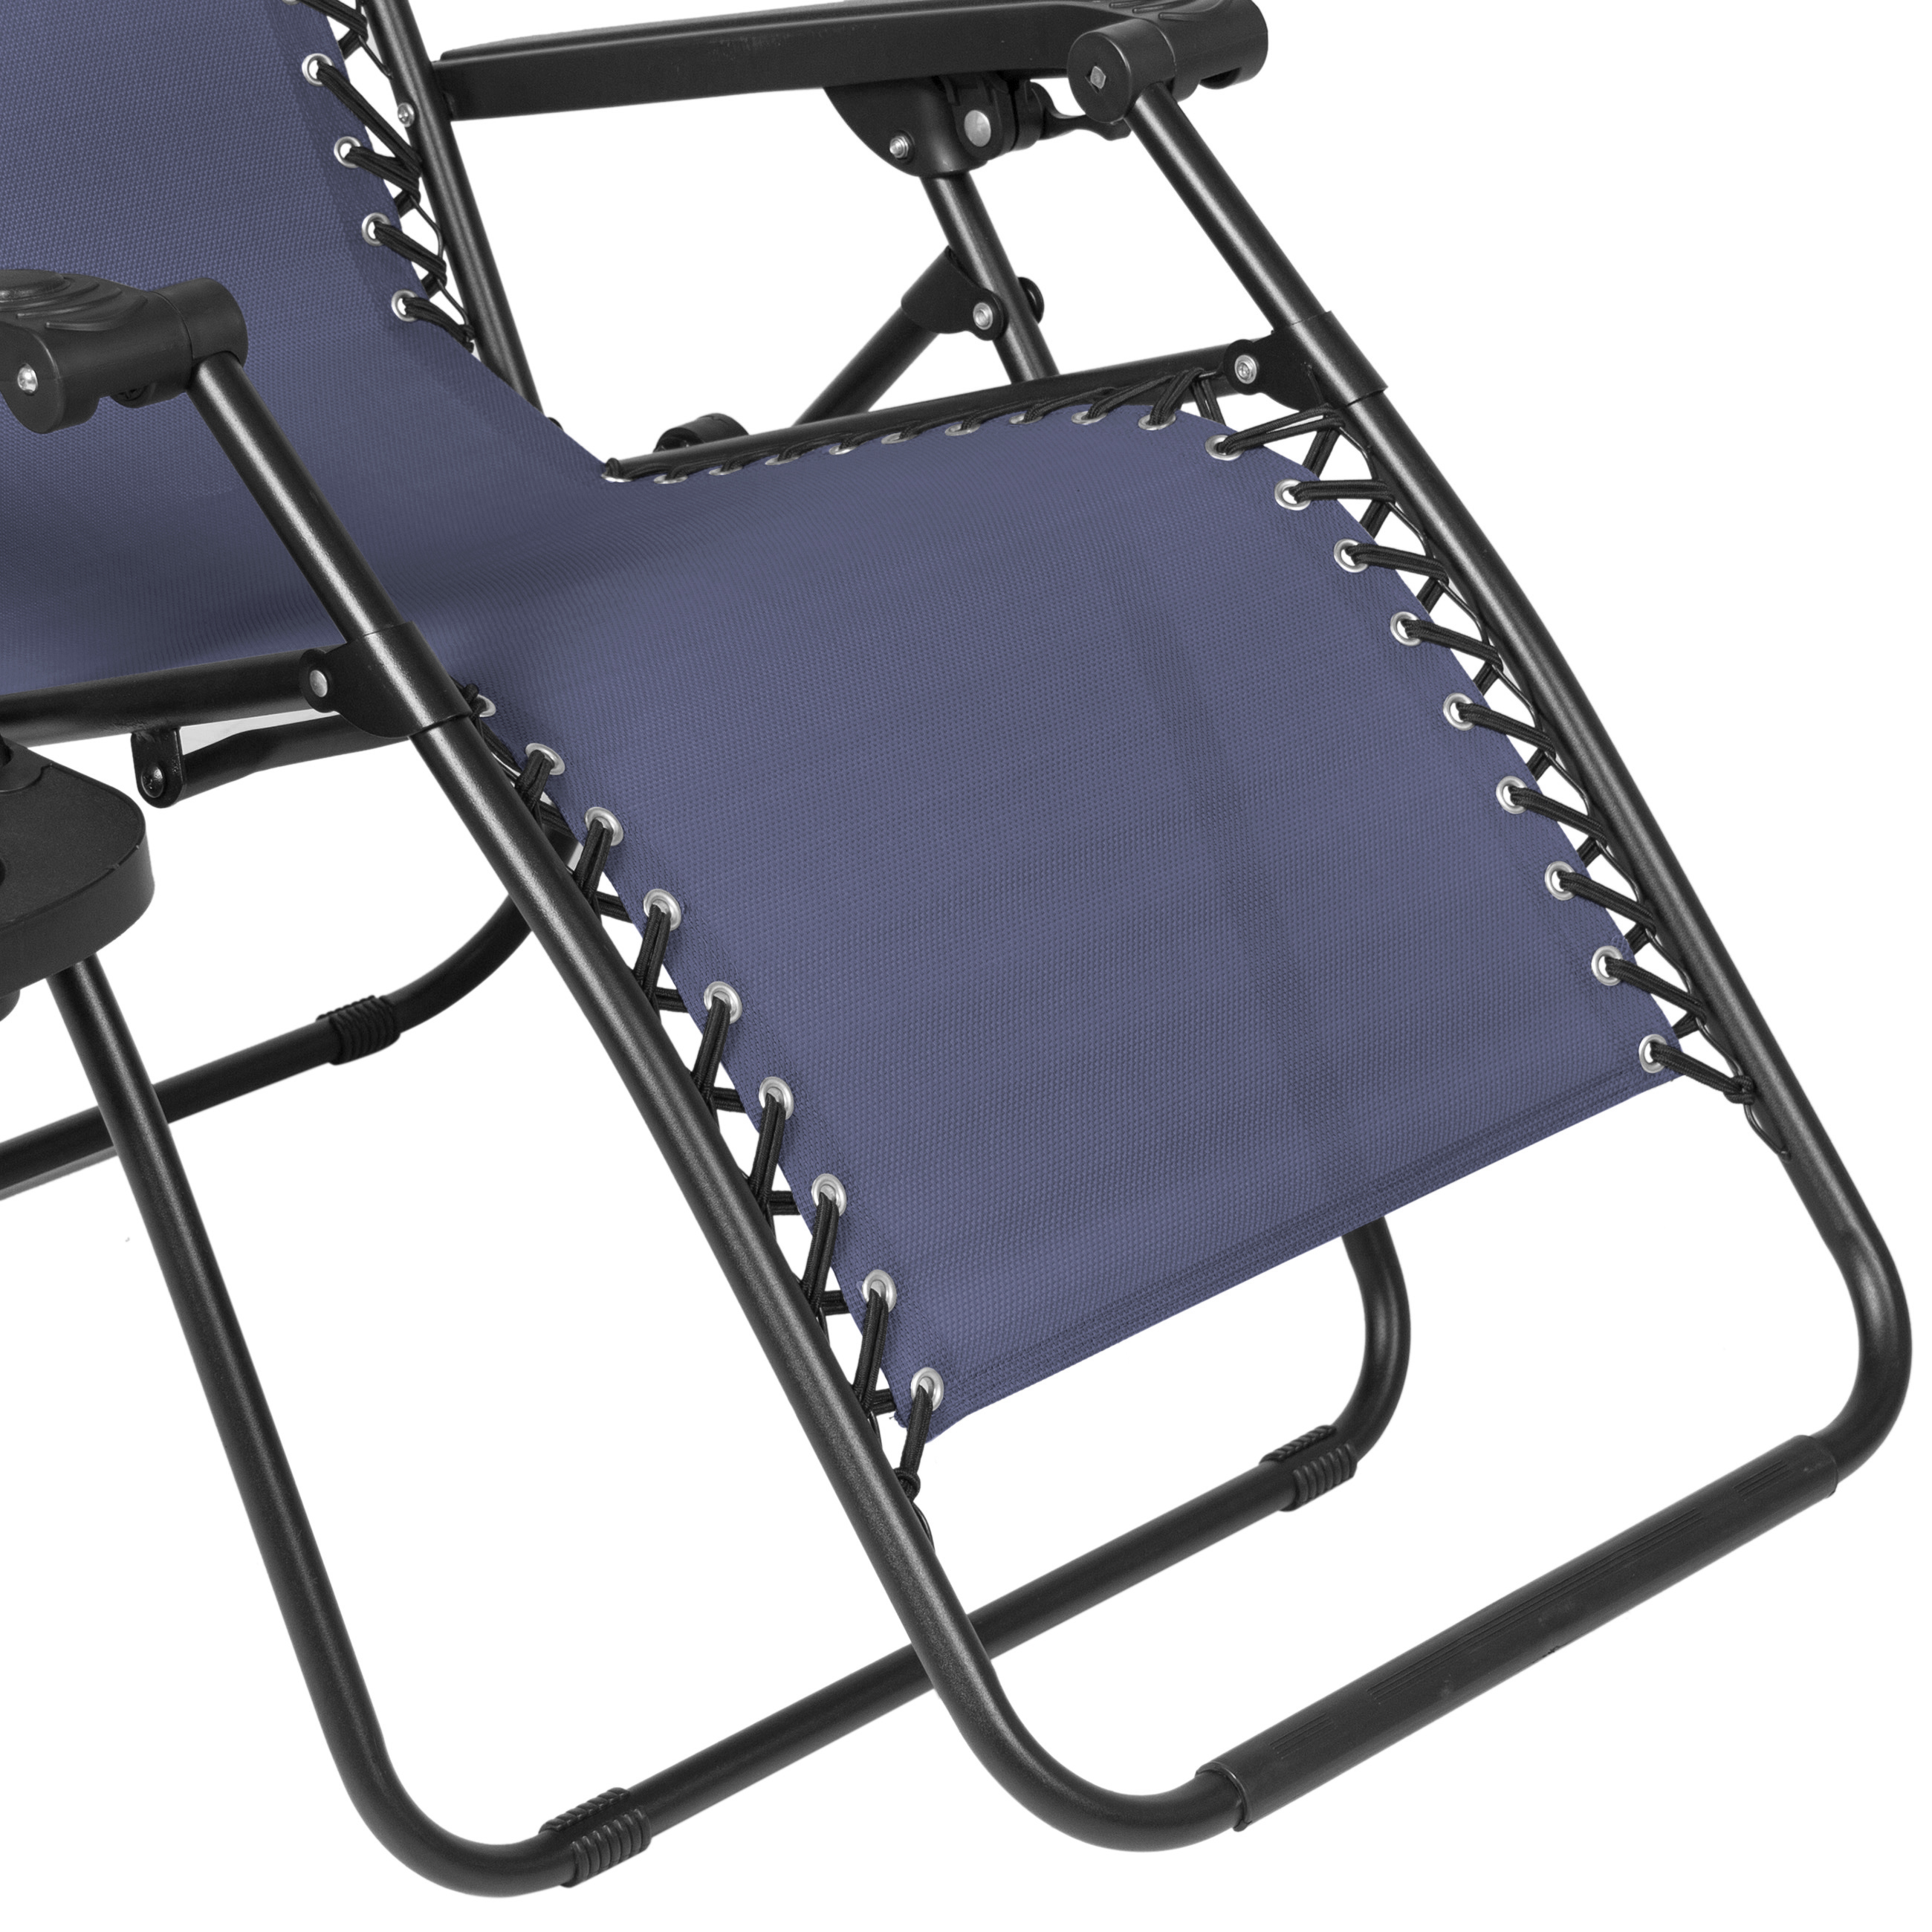 BCP-Folding-Zero-Gravity-Recliner-Lounge-Chair-w-Canopy-Cup-Holder thumbnail 54